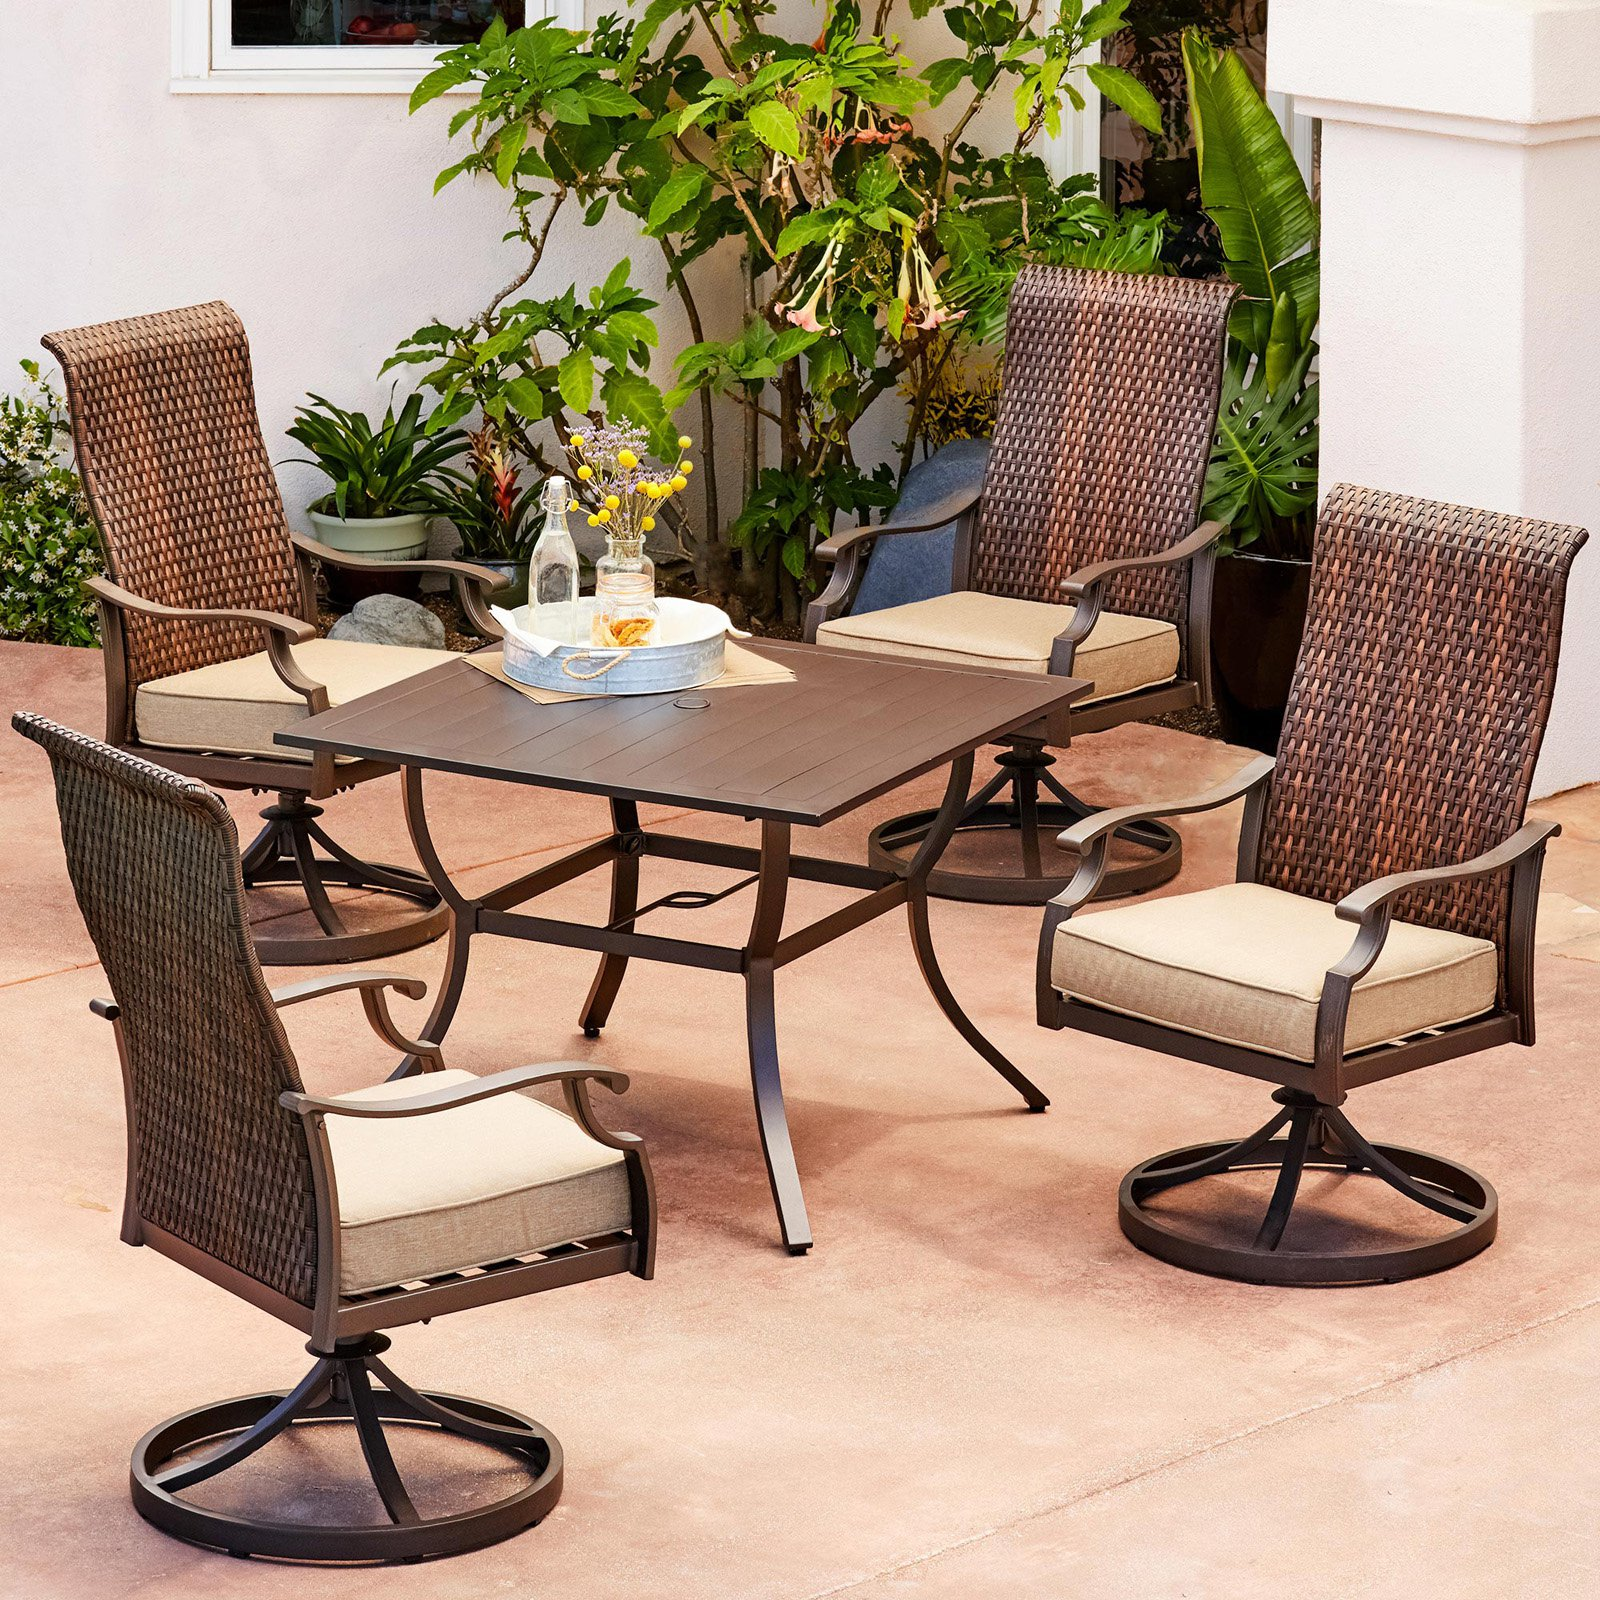 Royal Garden Rhone Valley Aluminum 5 Piece Motion Patio Dining Set